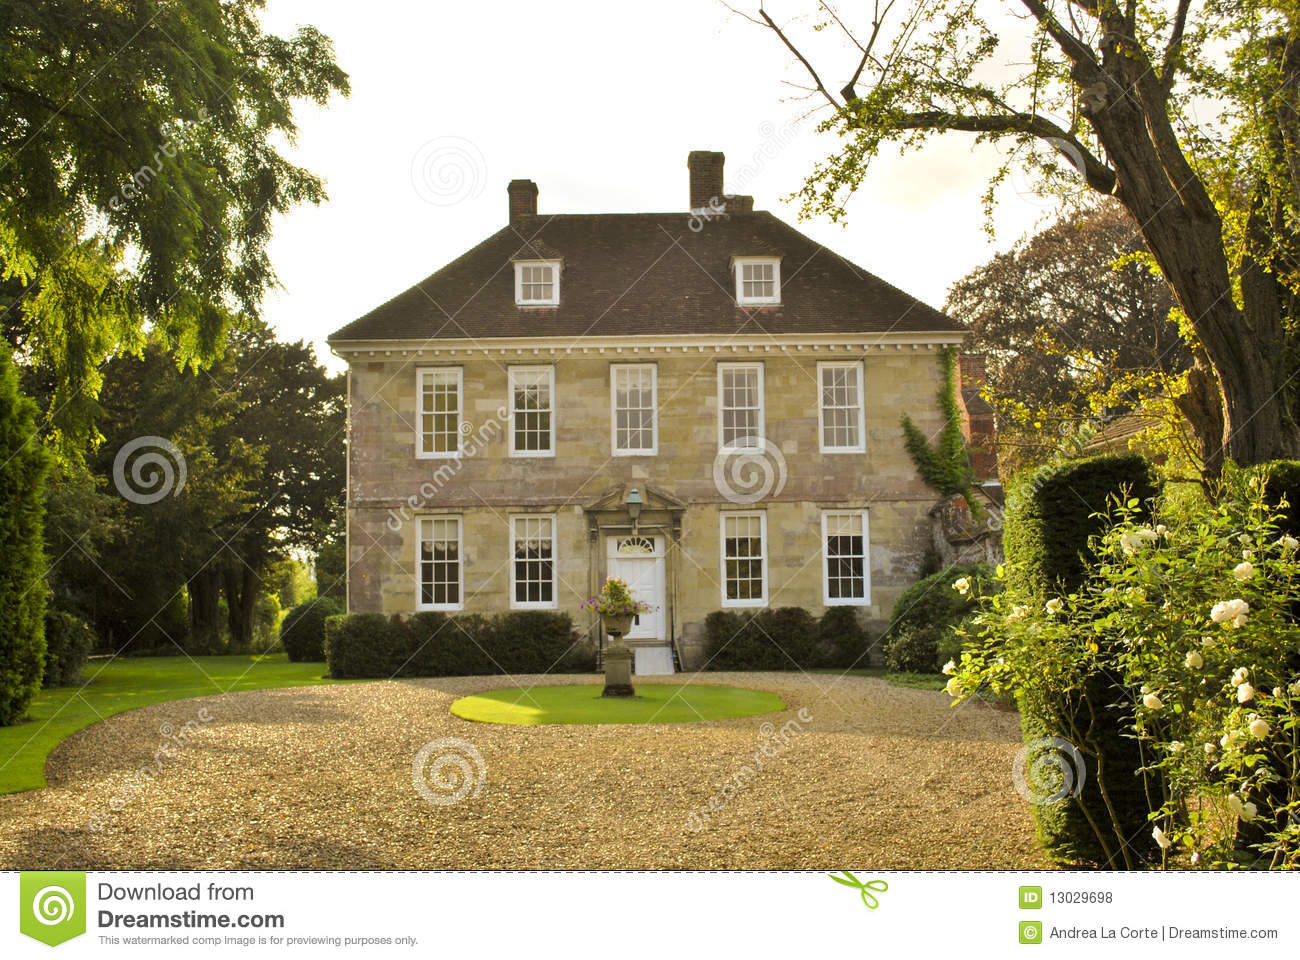 English Country House Stock Photo. Image Of Country, Upper